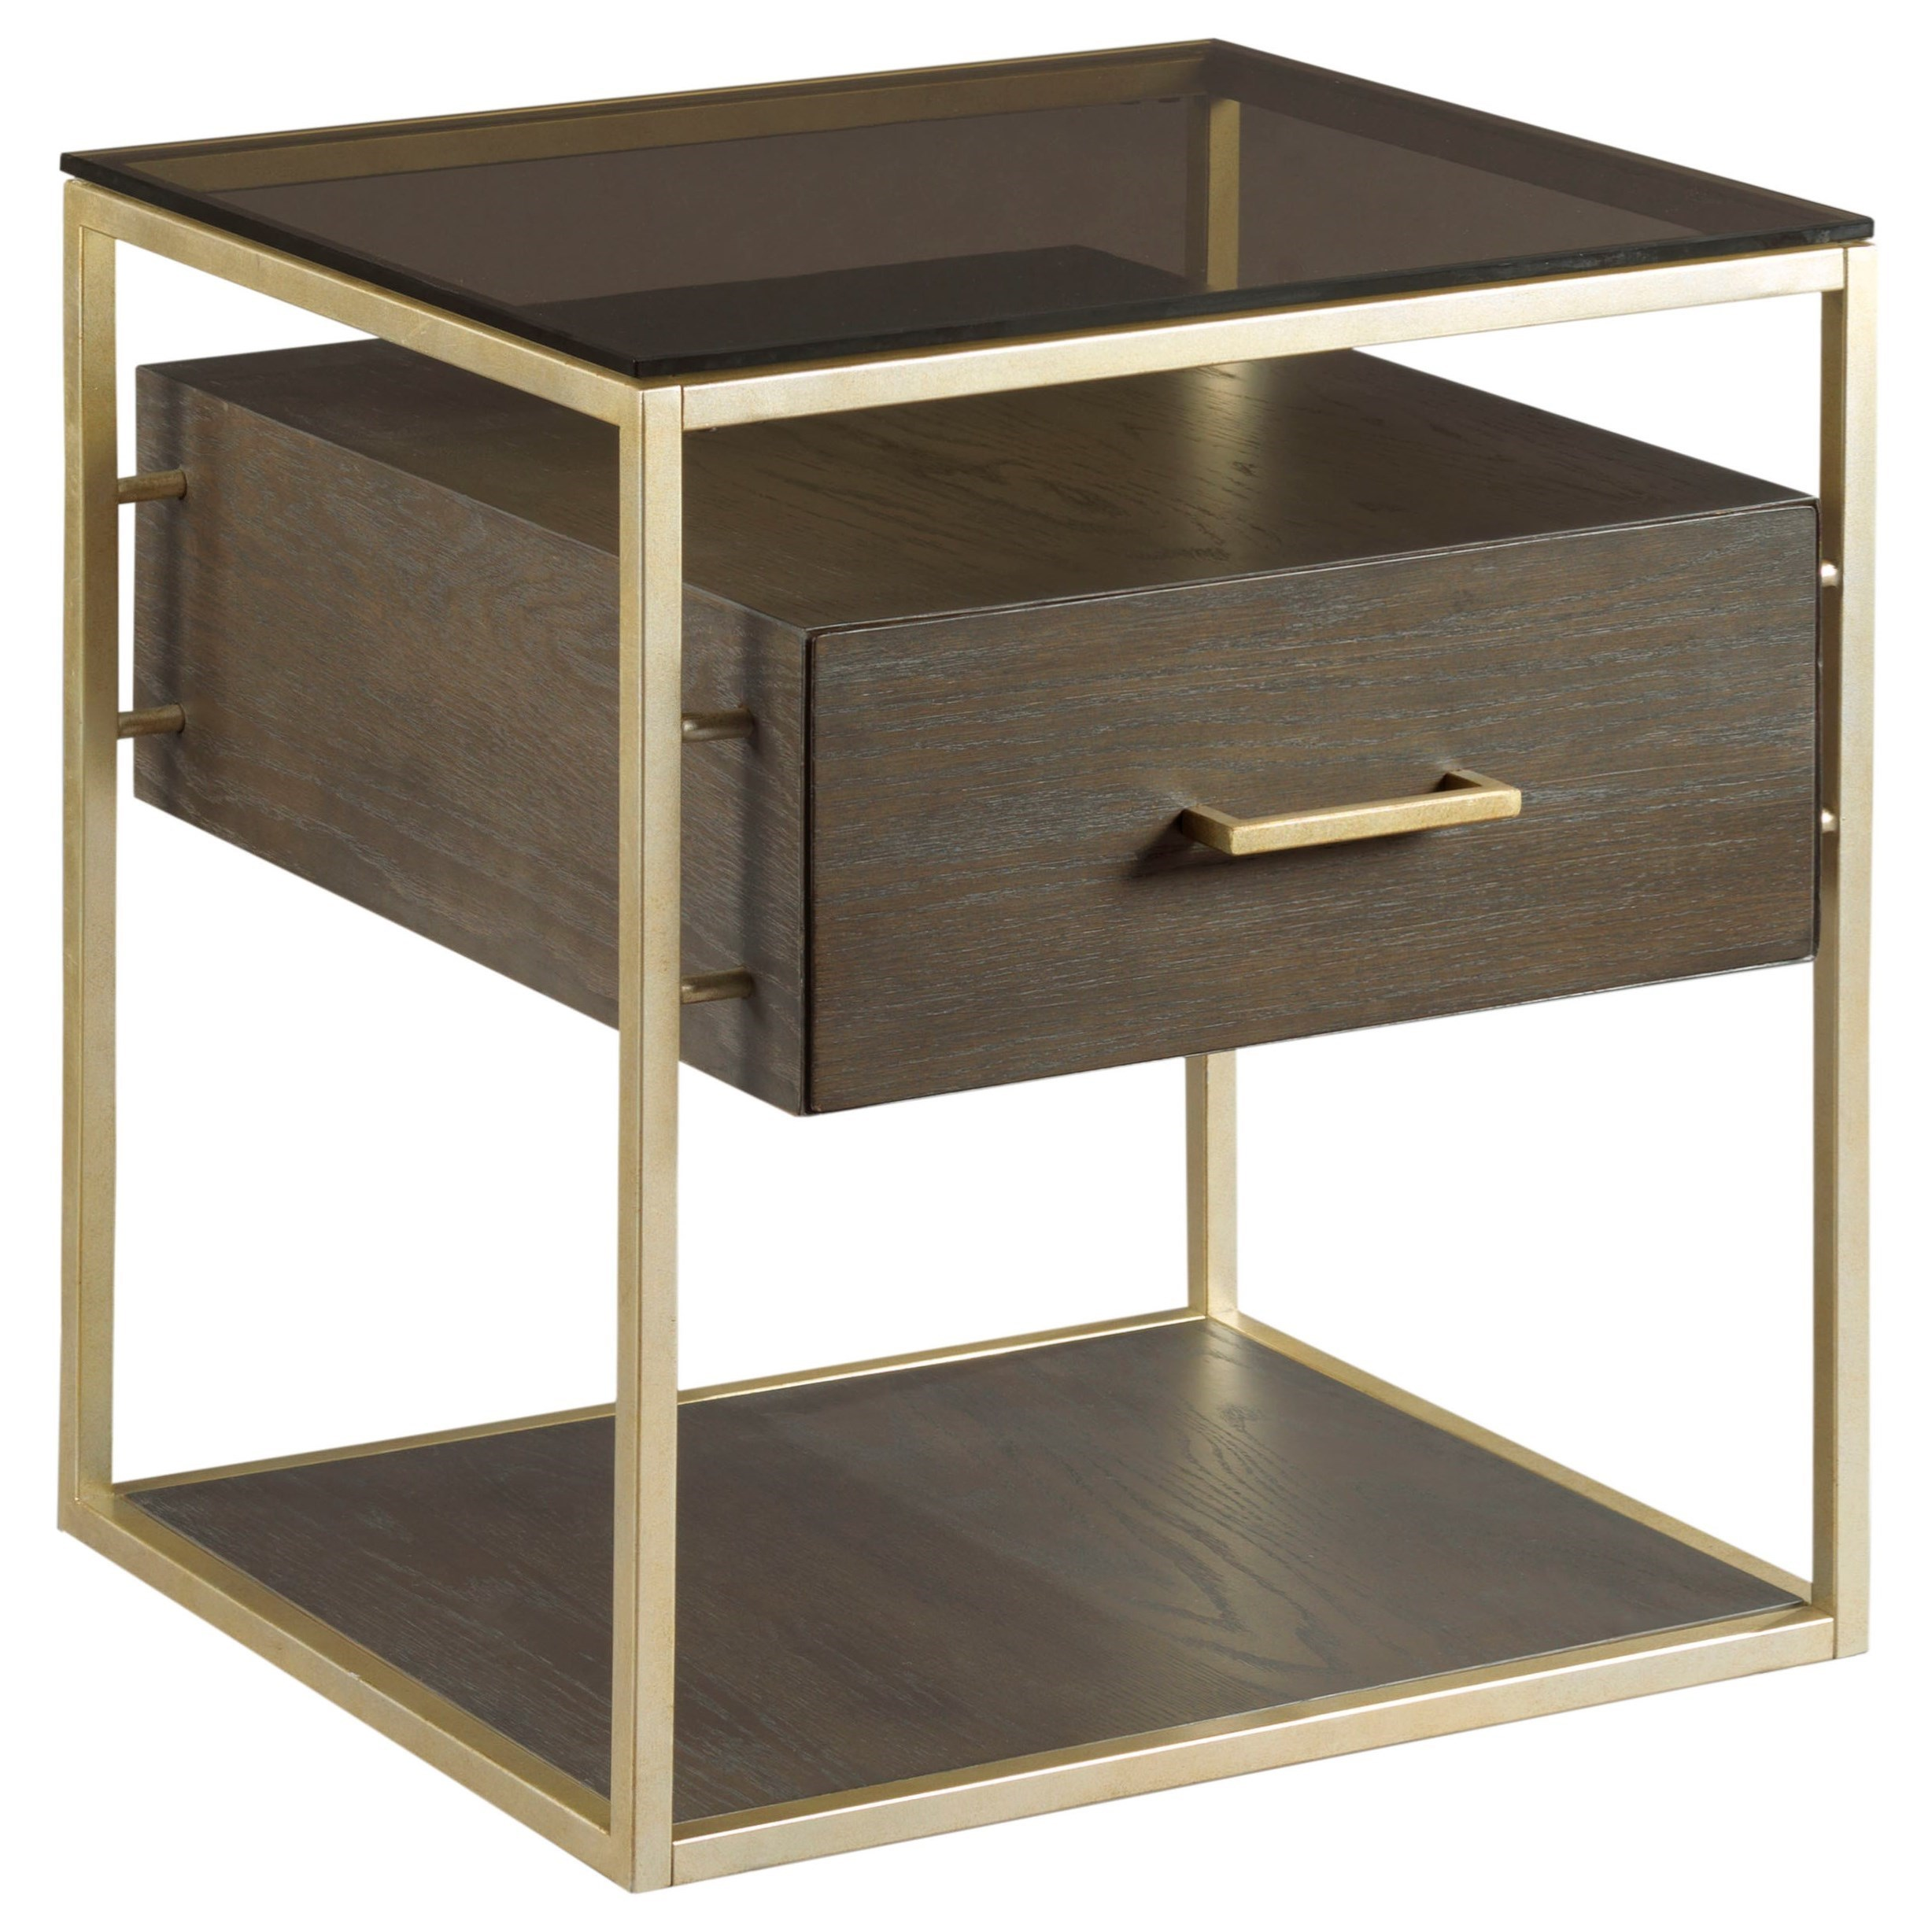 Hammary Essence End Table With Shelves With Glass Top   Adcock Furniture   End  Tables